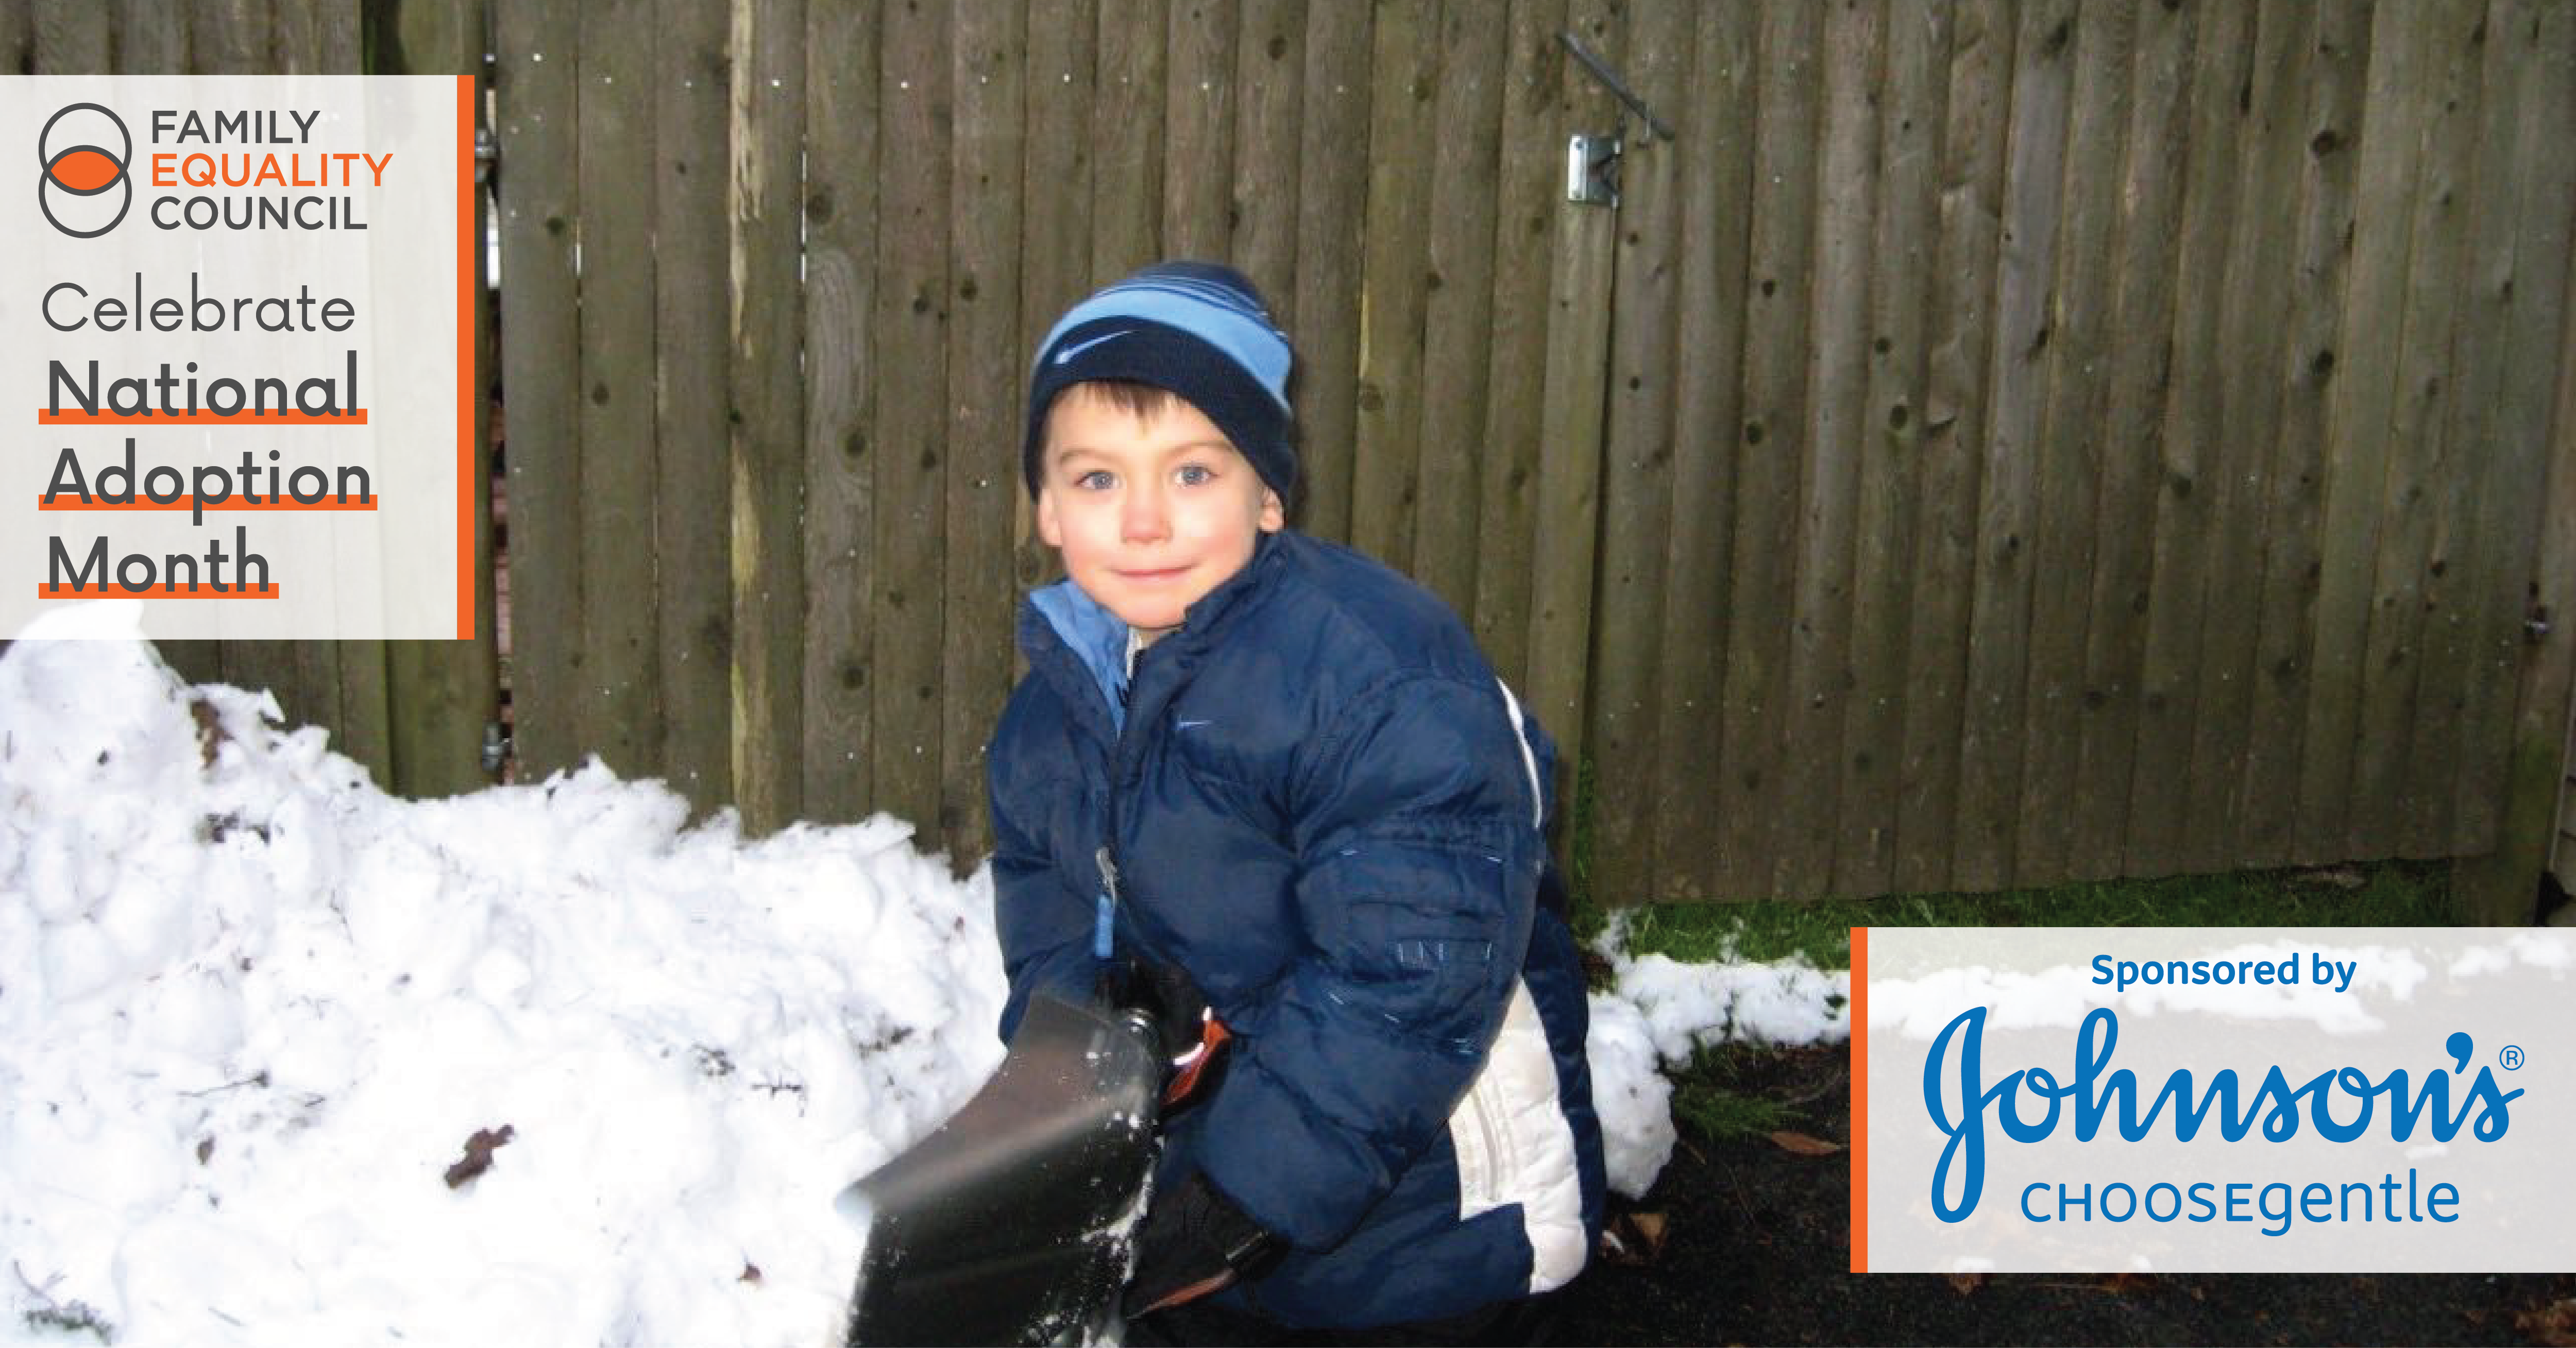 Ellen and Missy's Son in the Snow